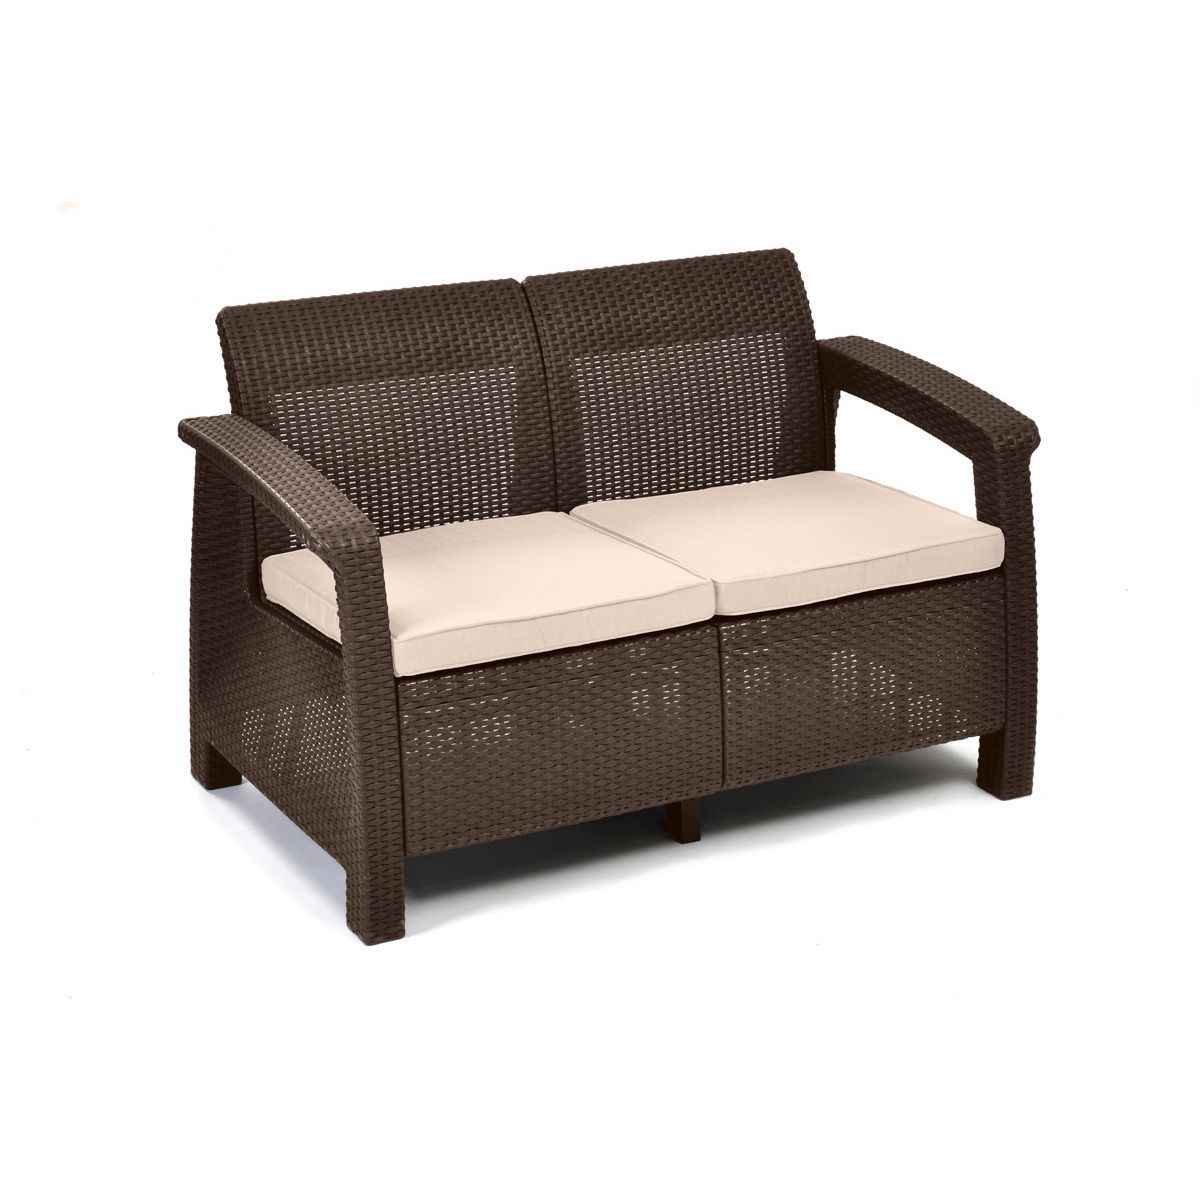 Online Shopping Bedding Furniture Electronics Jewelry Clothing More Love Seat Outdoor Loveseat Rattan Outdoor Furniture